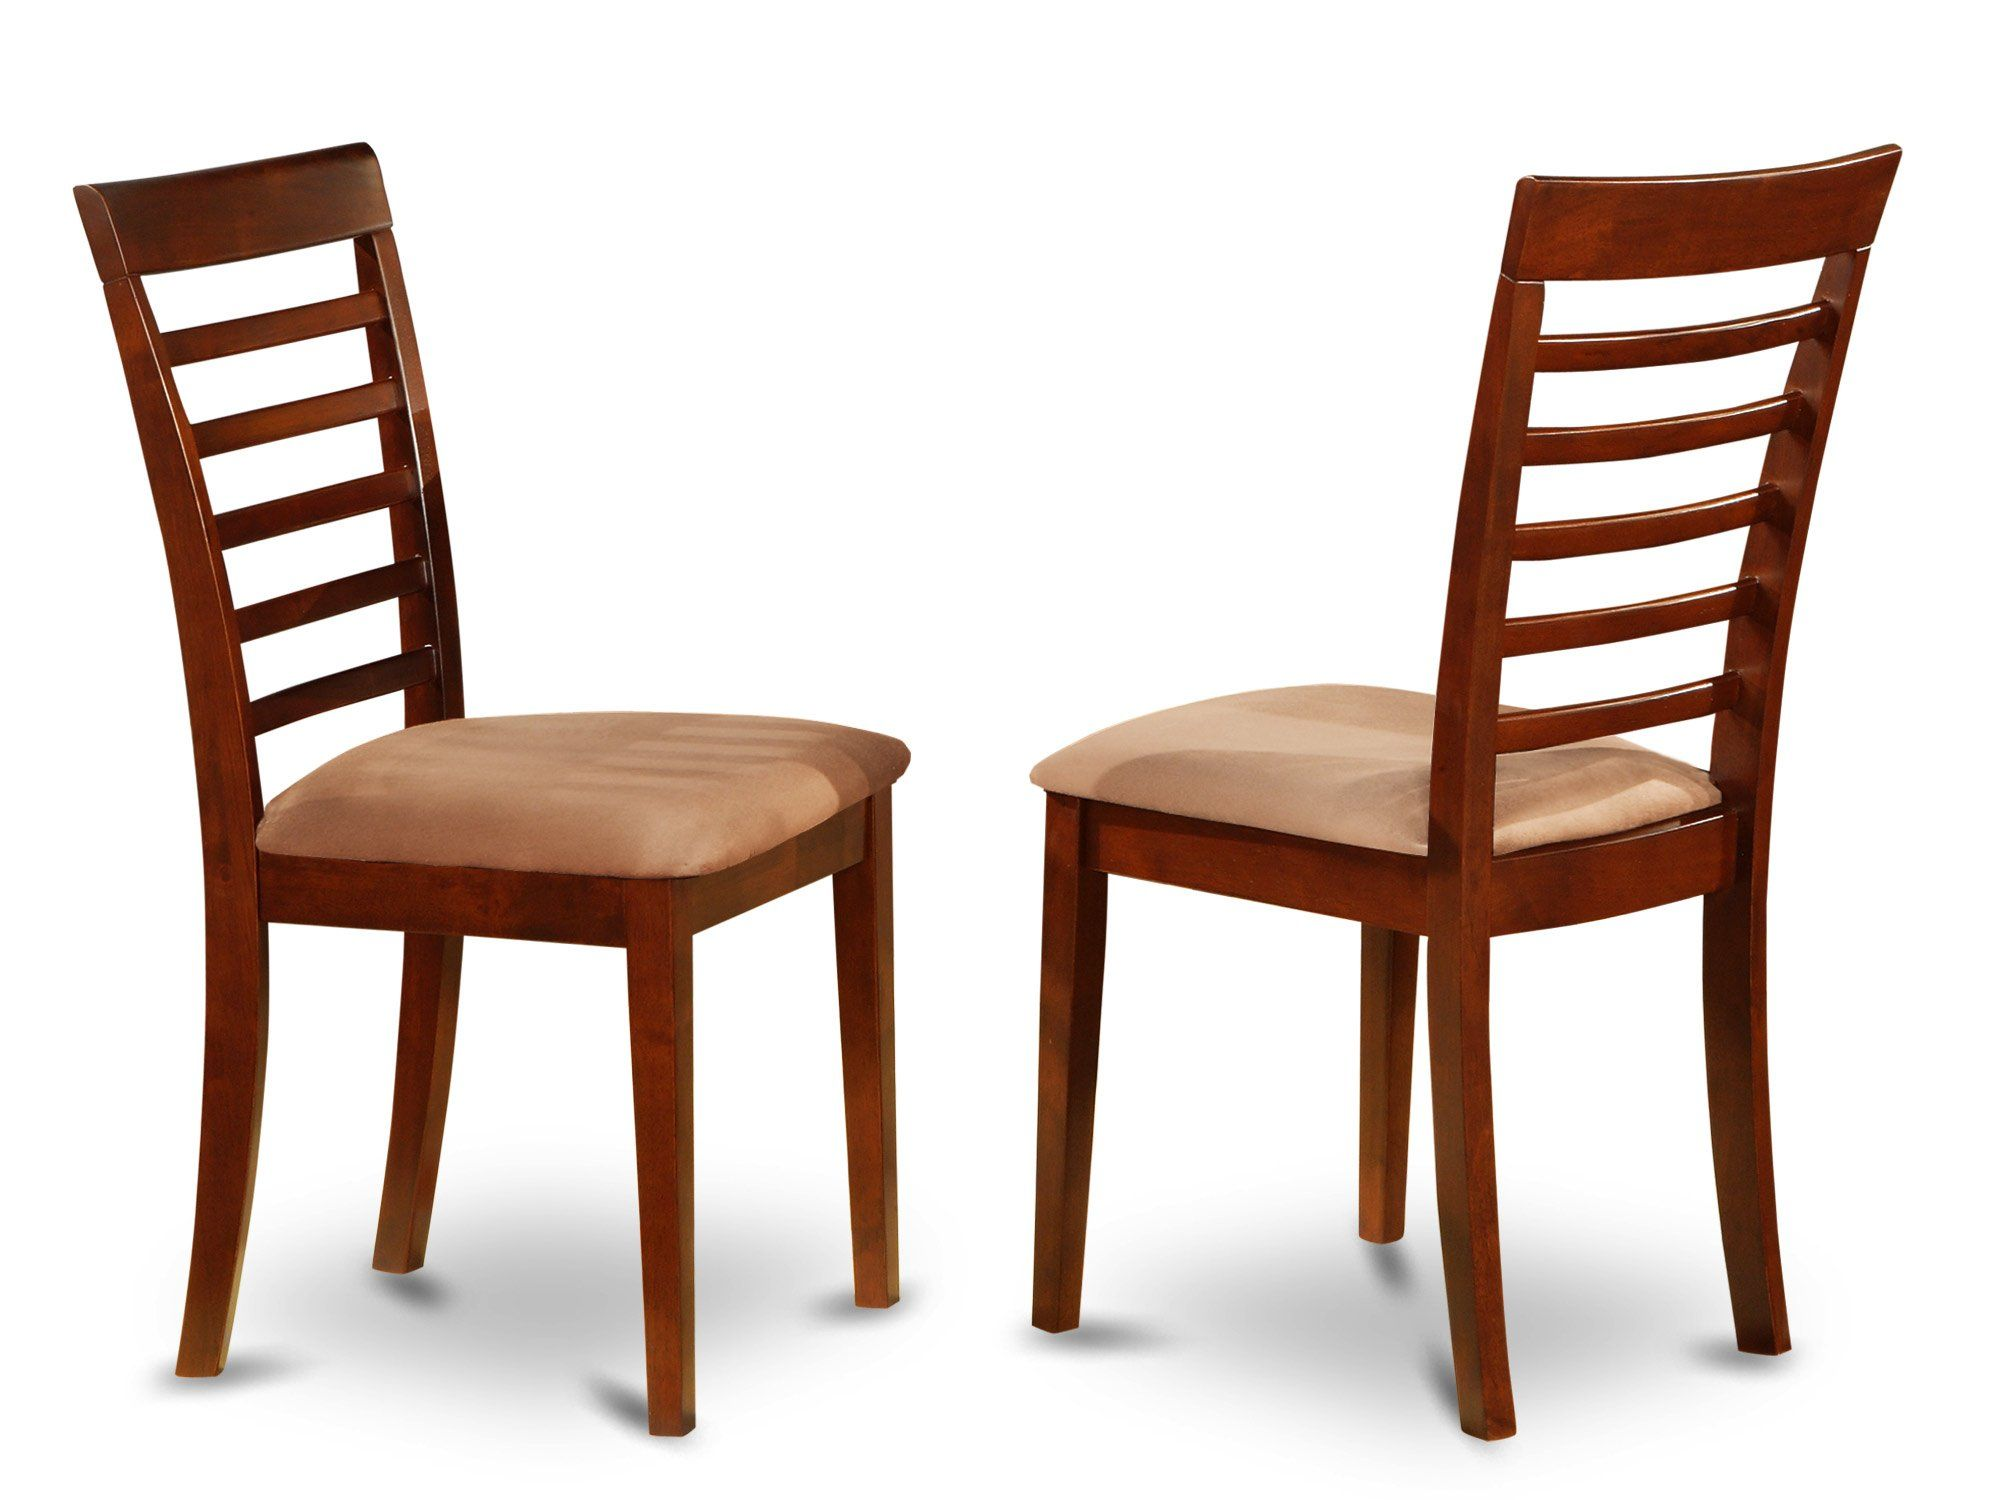 Merveilleux East West Furniture MLCMAHC Dining Chair Set With Padded Seat Mahogany  Finish Set Of 2 ** More Info Could Be Found At The Image Url.